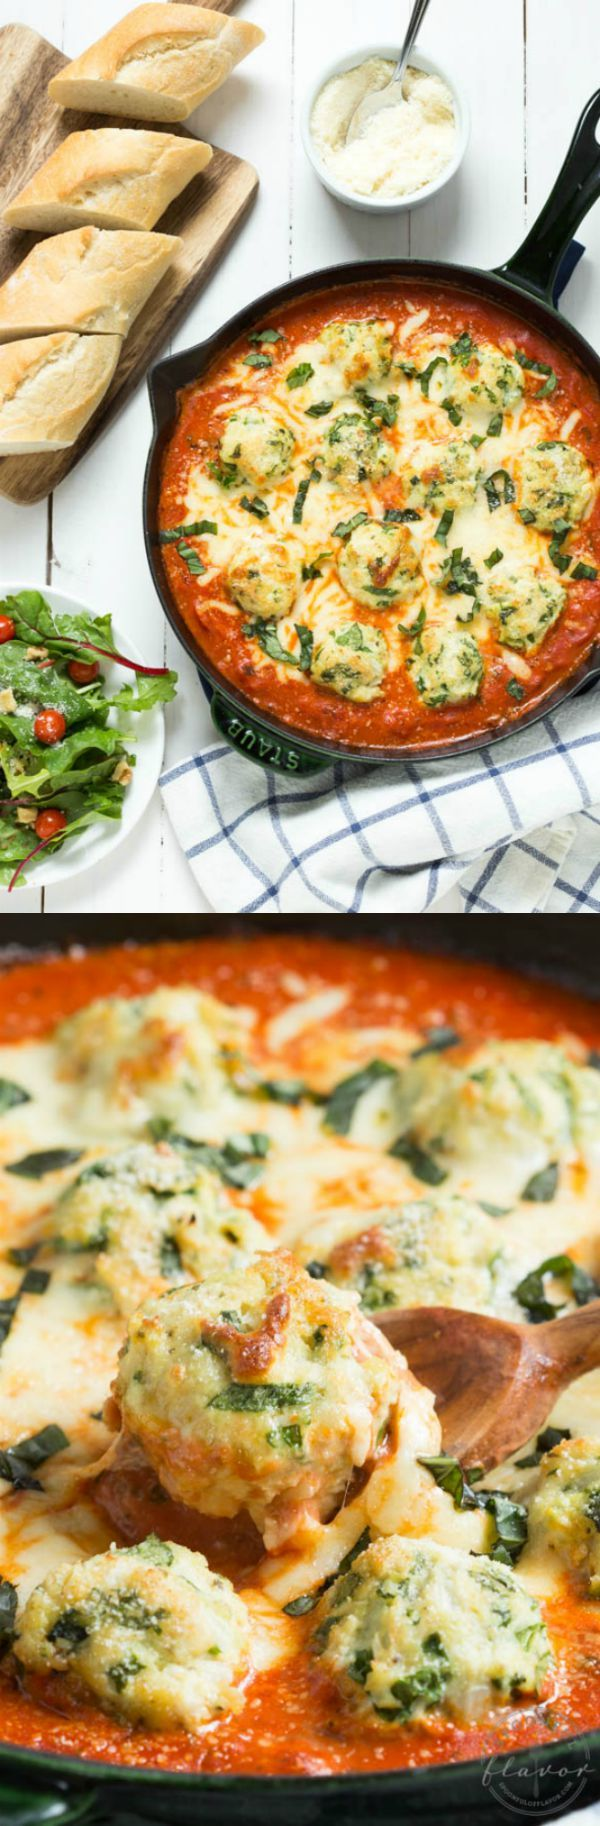 Spinach Chicken Parmesan Meatballs in Creamy Tomato Sauce is a delicious meal that the entire family will love!